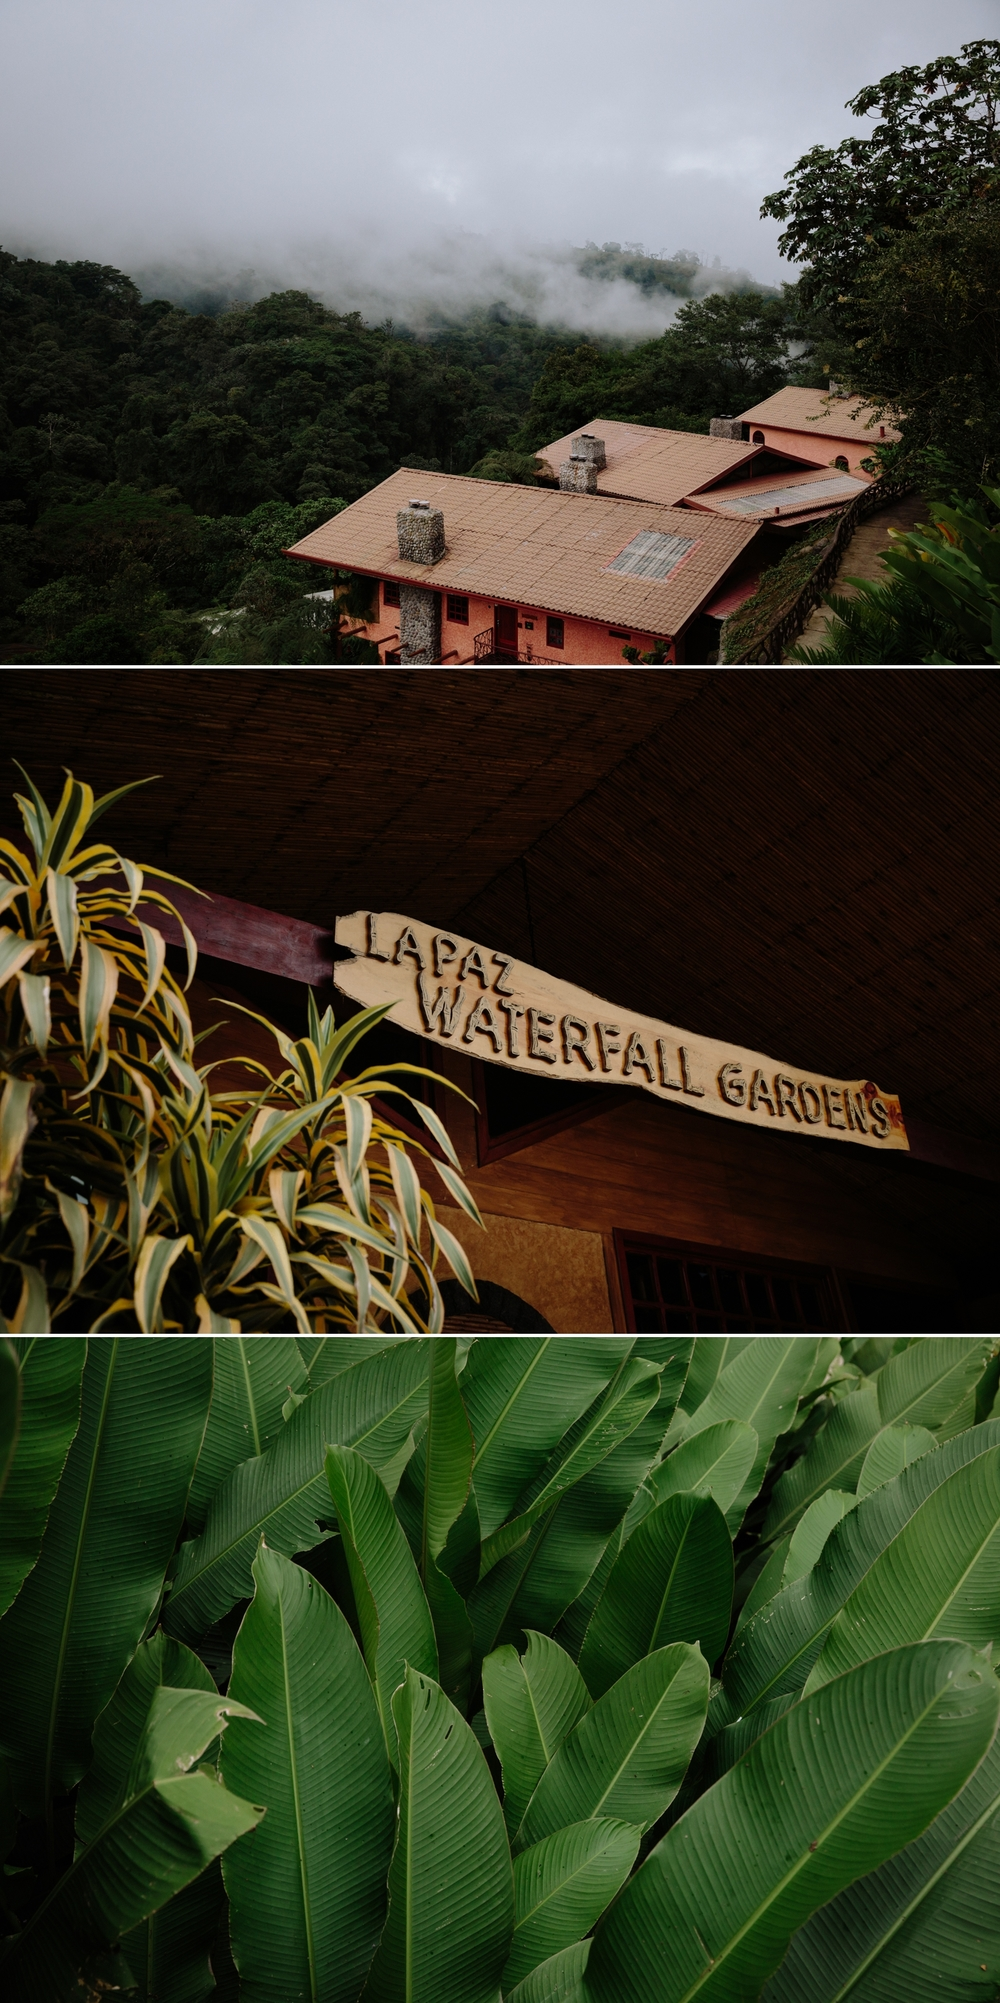 La Paz Waterfall Garden and Peace Lodge in Costa Rica by Paige Nelson